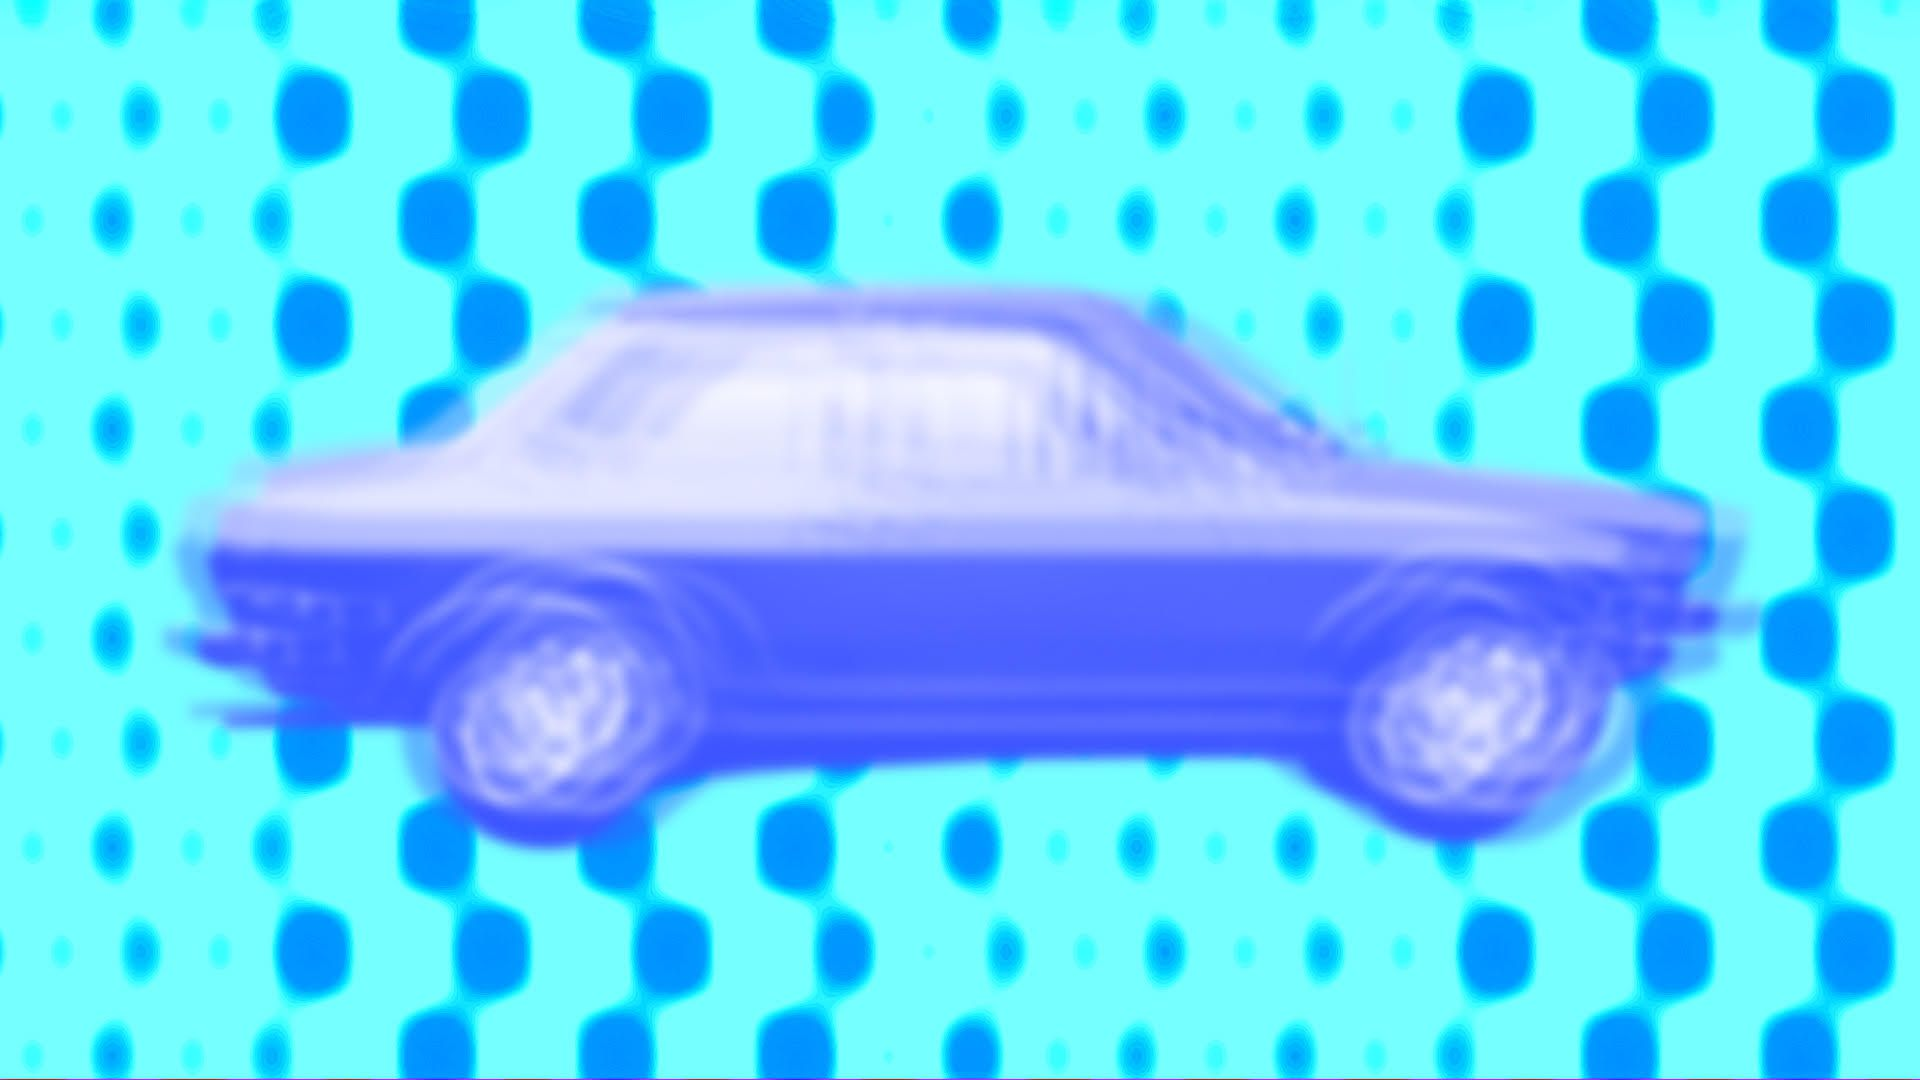 blurry illustrated car against a background of dots